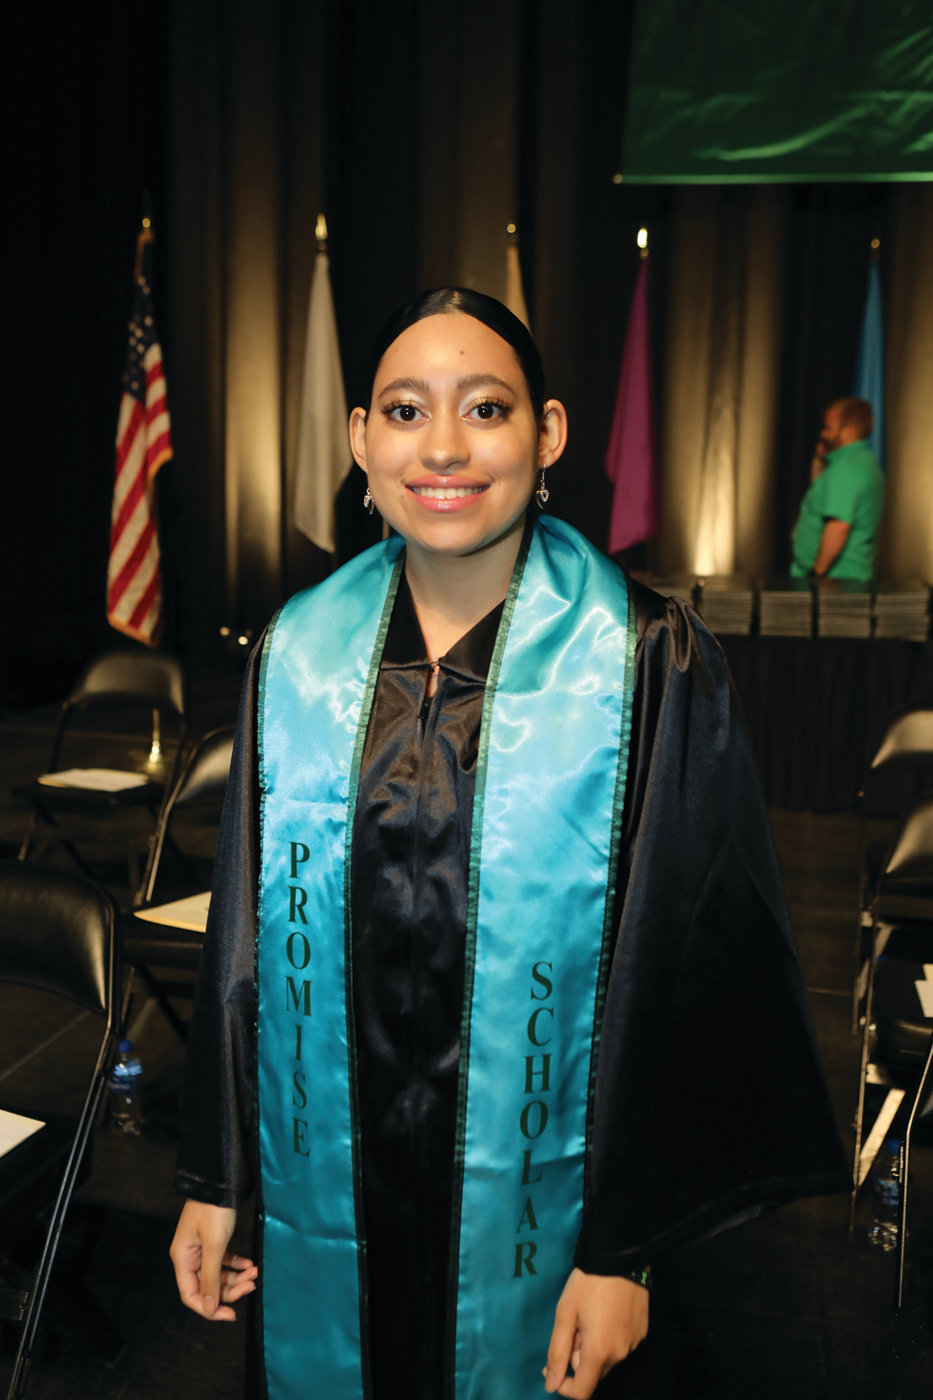 PROMISING FUTURE: Alyze Brito, a Cranston High School West graduate, was among the CCRI graduates who earned their degree through the Rhode Island Promise scholarship program.